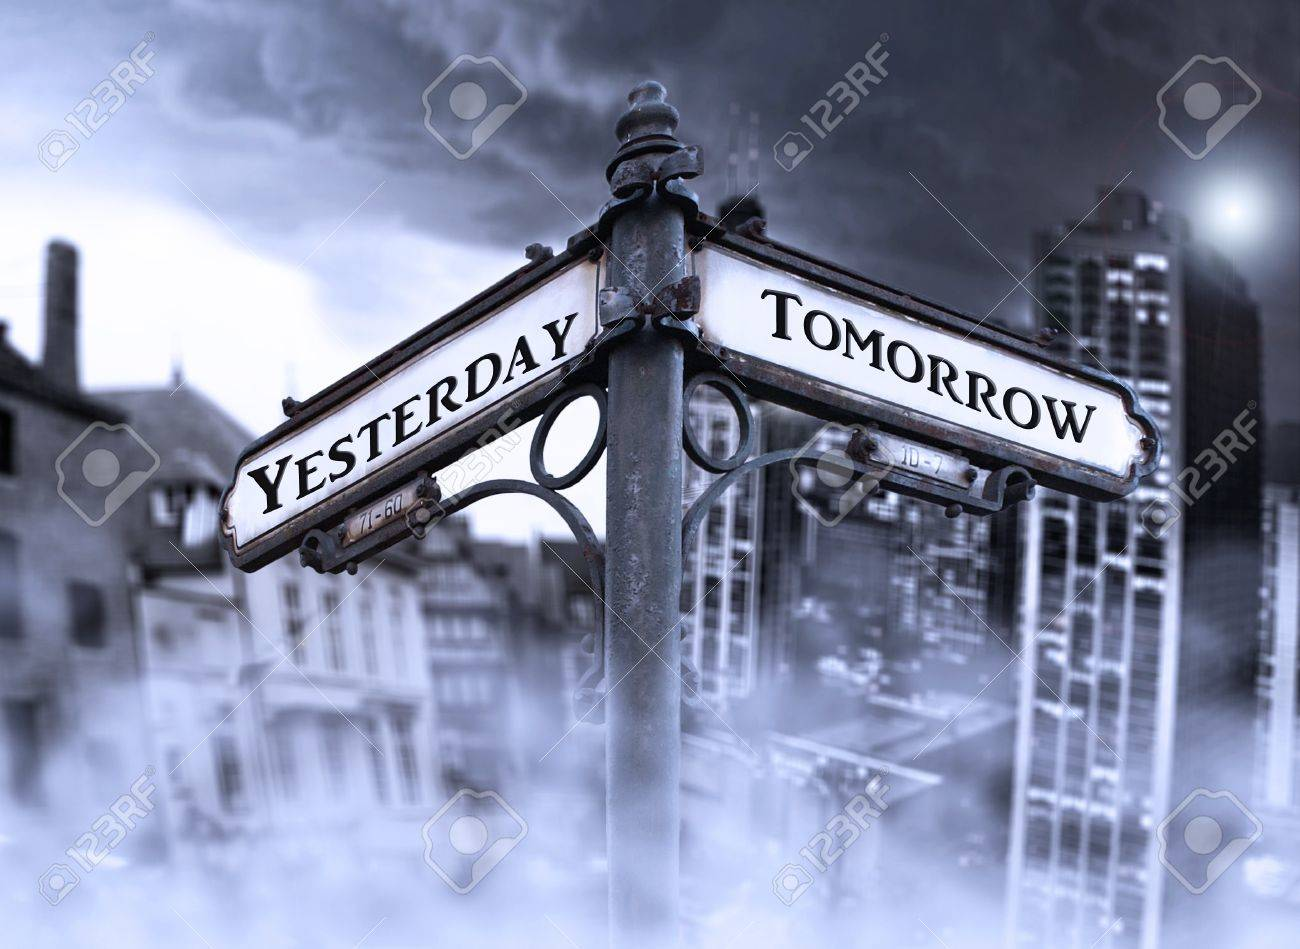 Arrows indicates Yersterday and Tomorrow with two different dramatic view: old and new city wrapped in fog in the background Stock Photo - 12044361